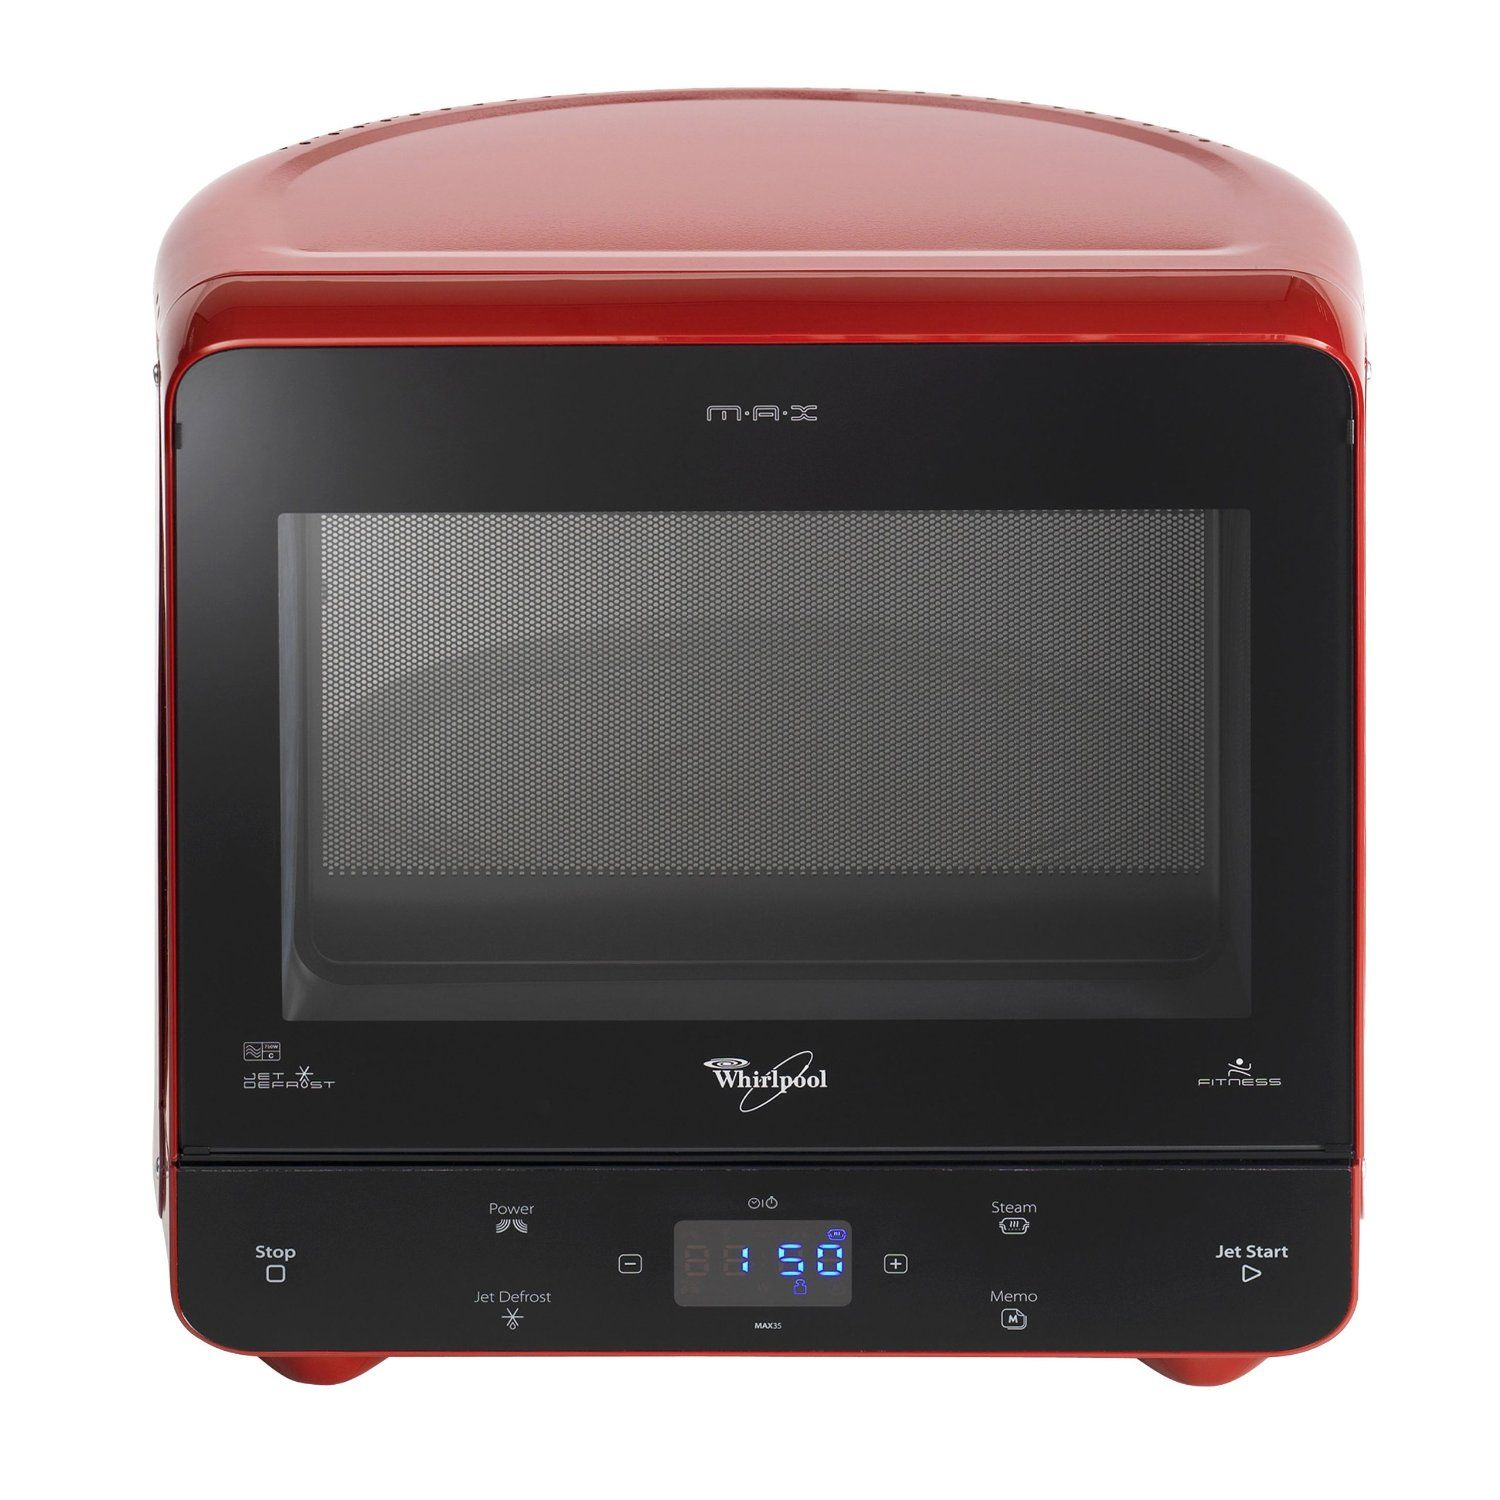 Whirlpool Max Microwave With Steam Function Red Amazon Co Uk Kitchen Home Whirlpool Steam